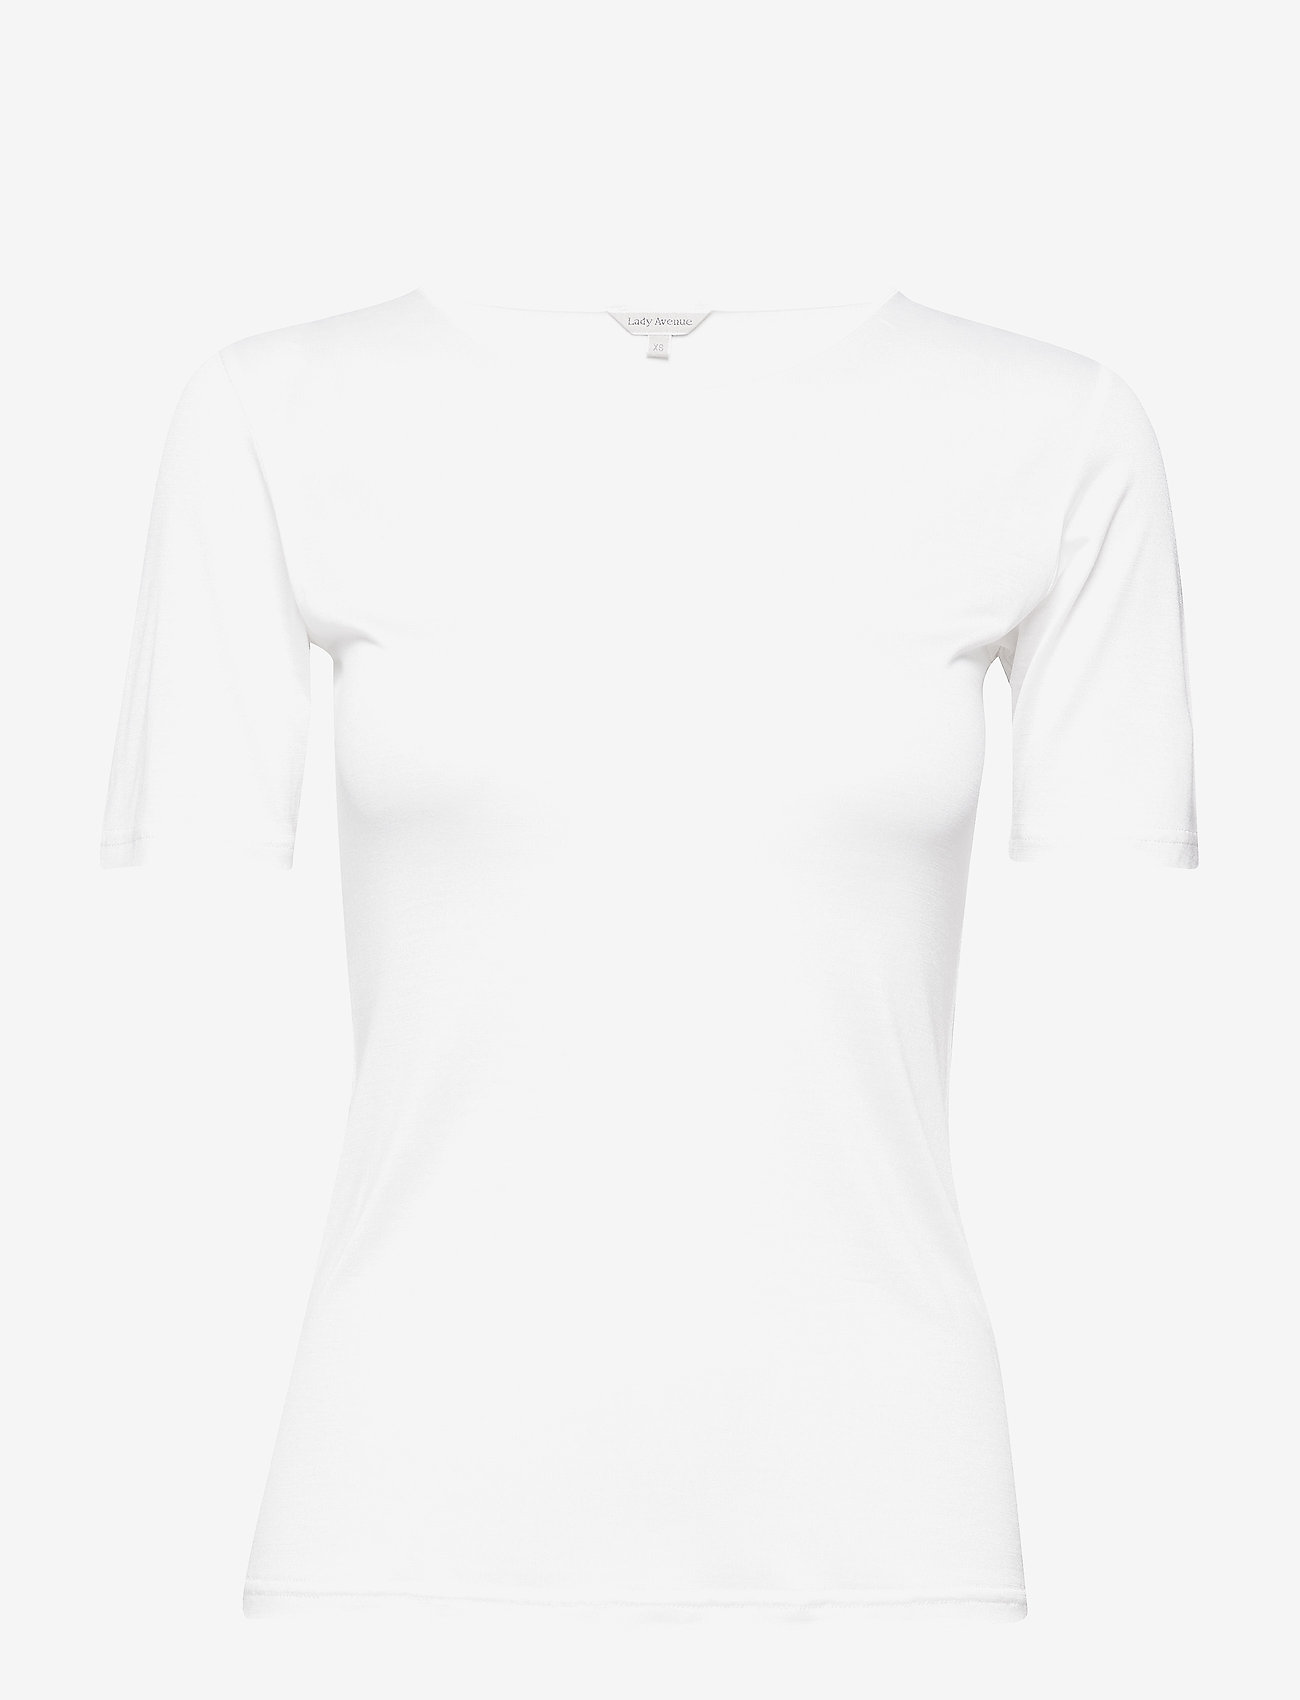 Lady Avenue - Silk Jersey - T-shirt - tops - off-white